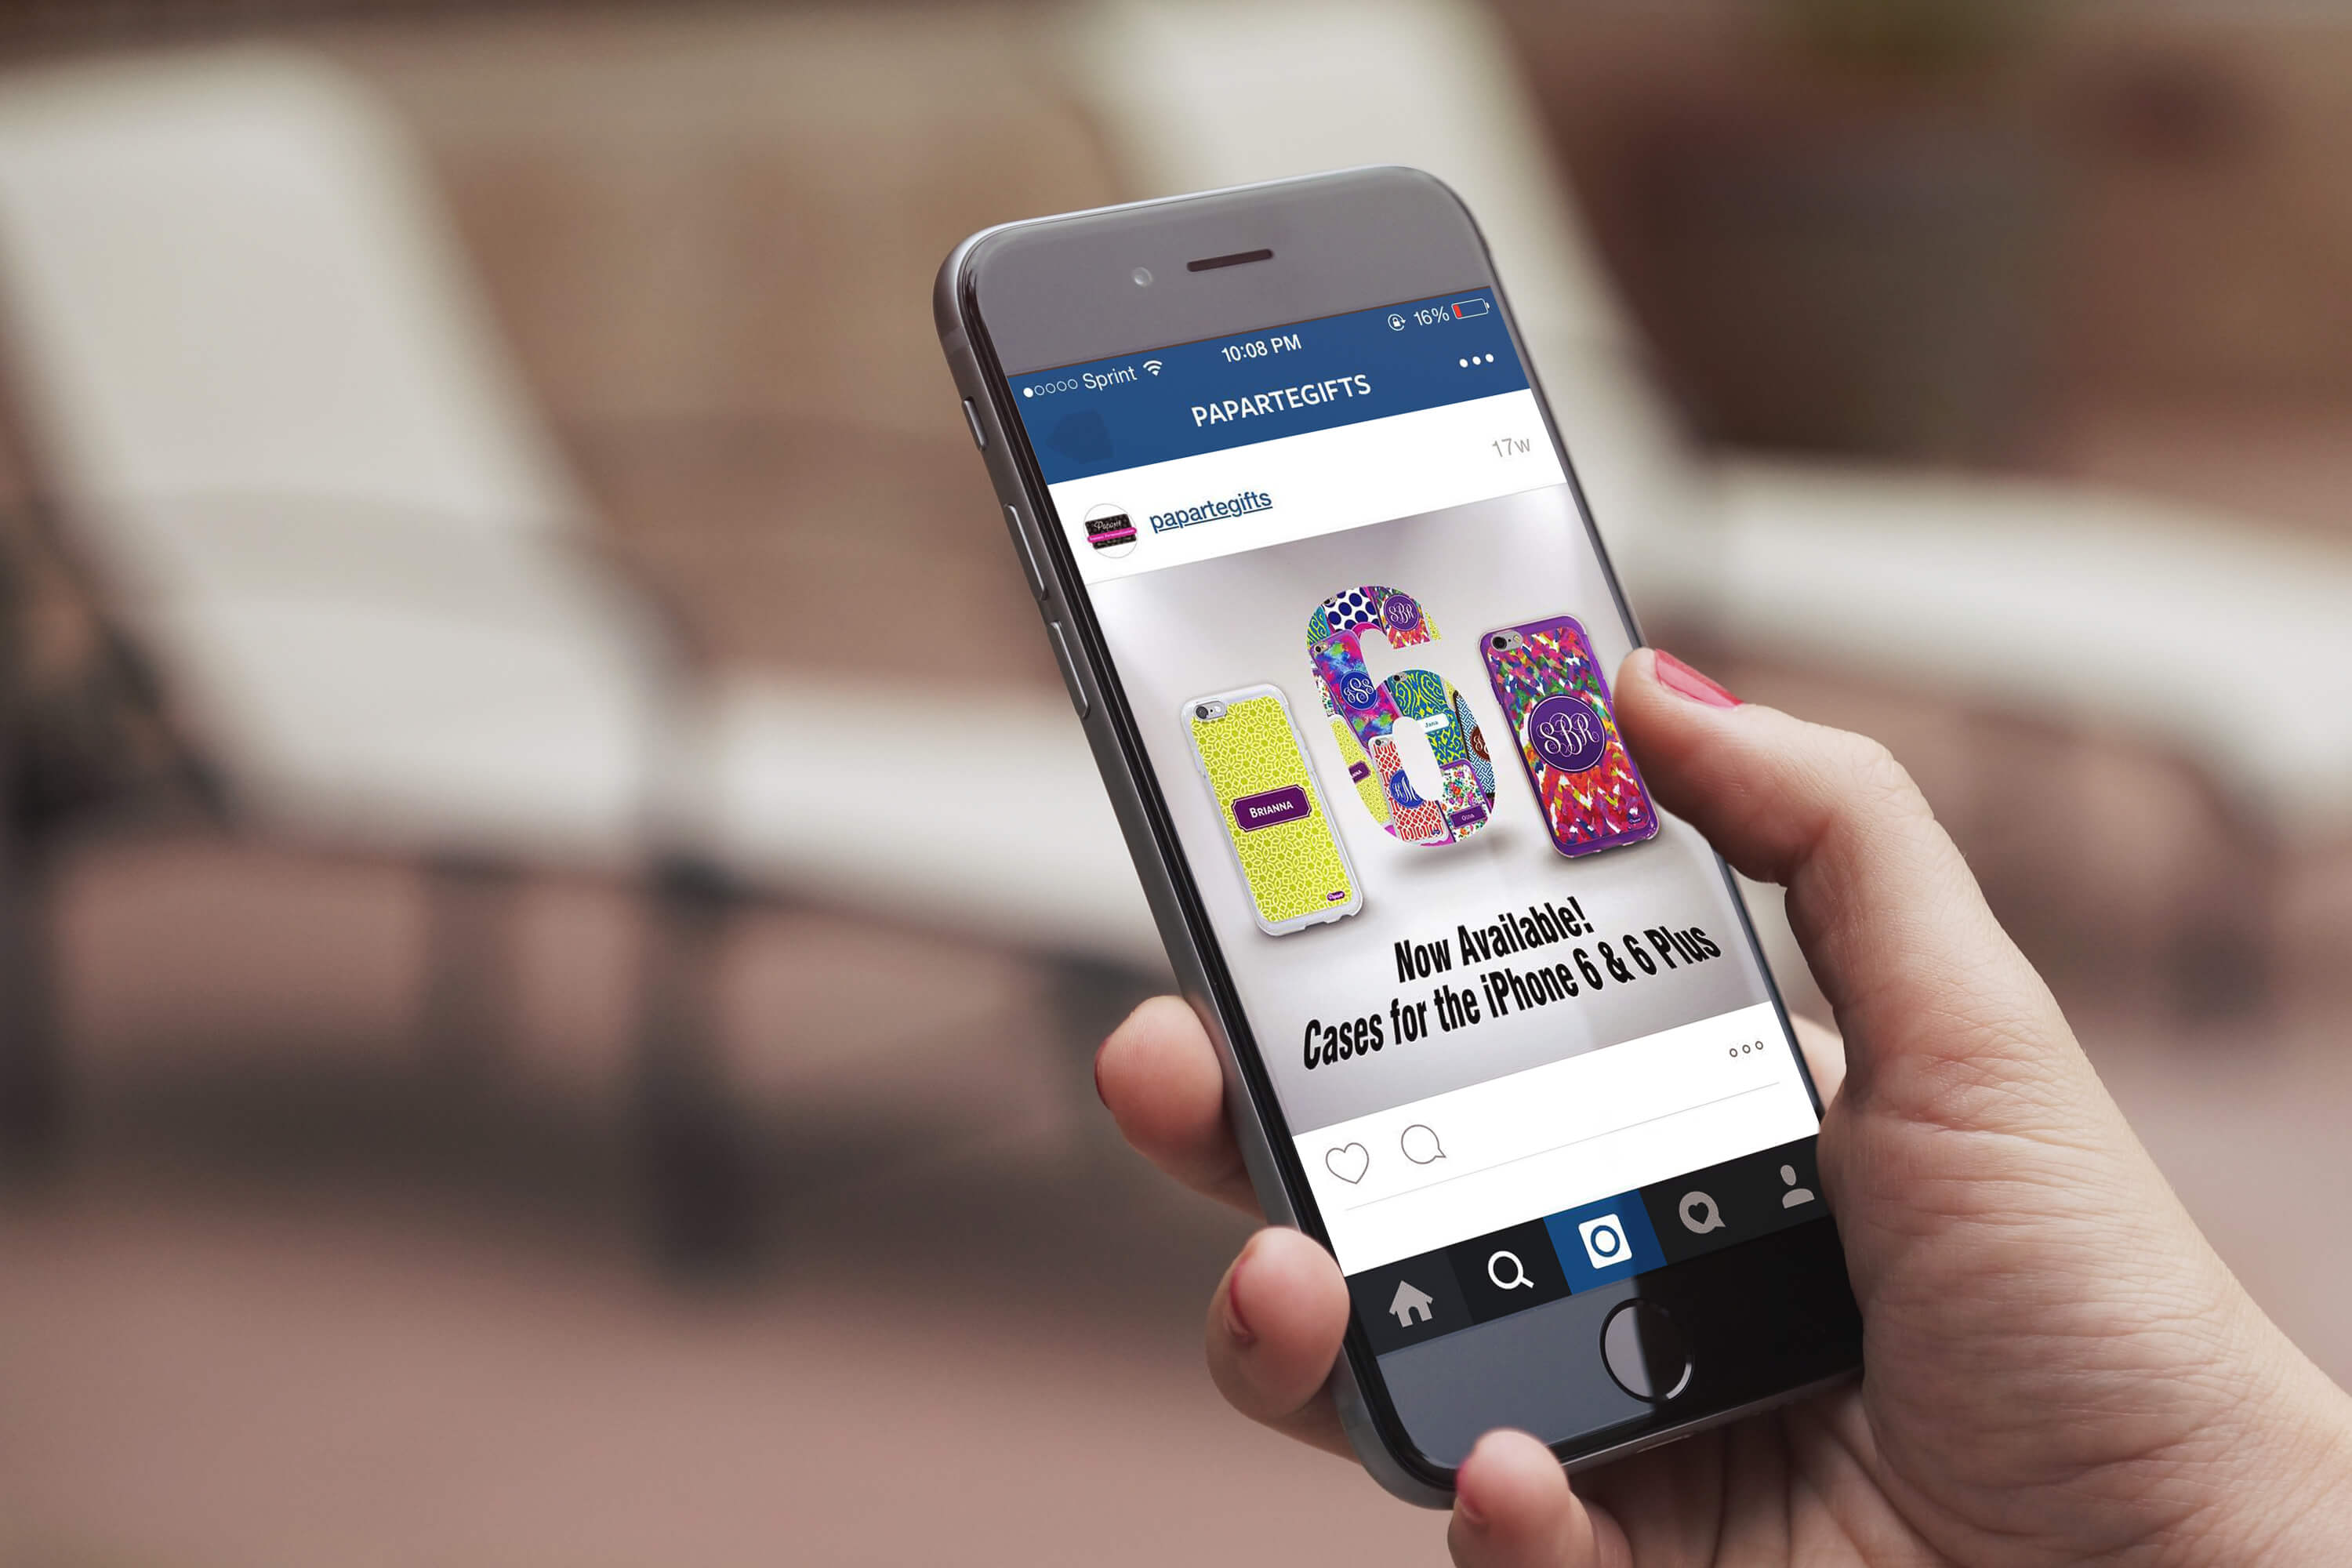 How to prepare for the upcoming changes to Instagram